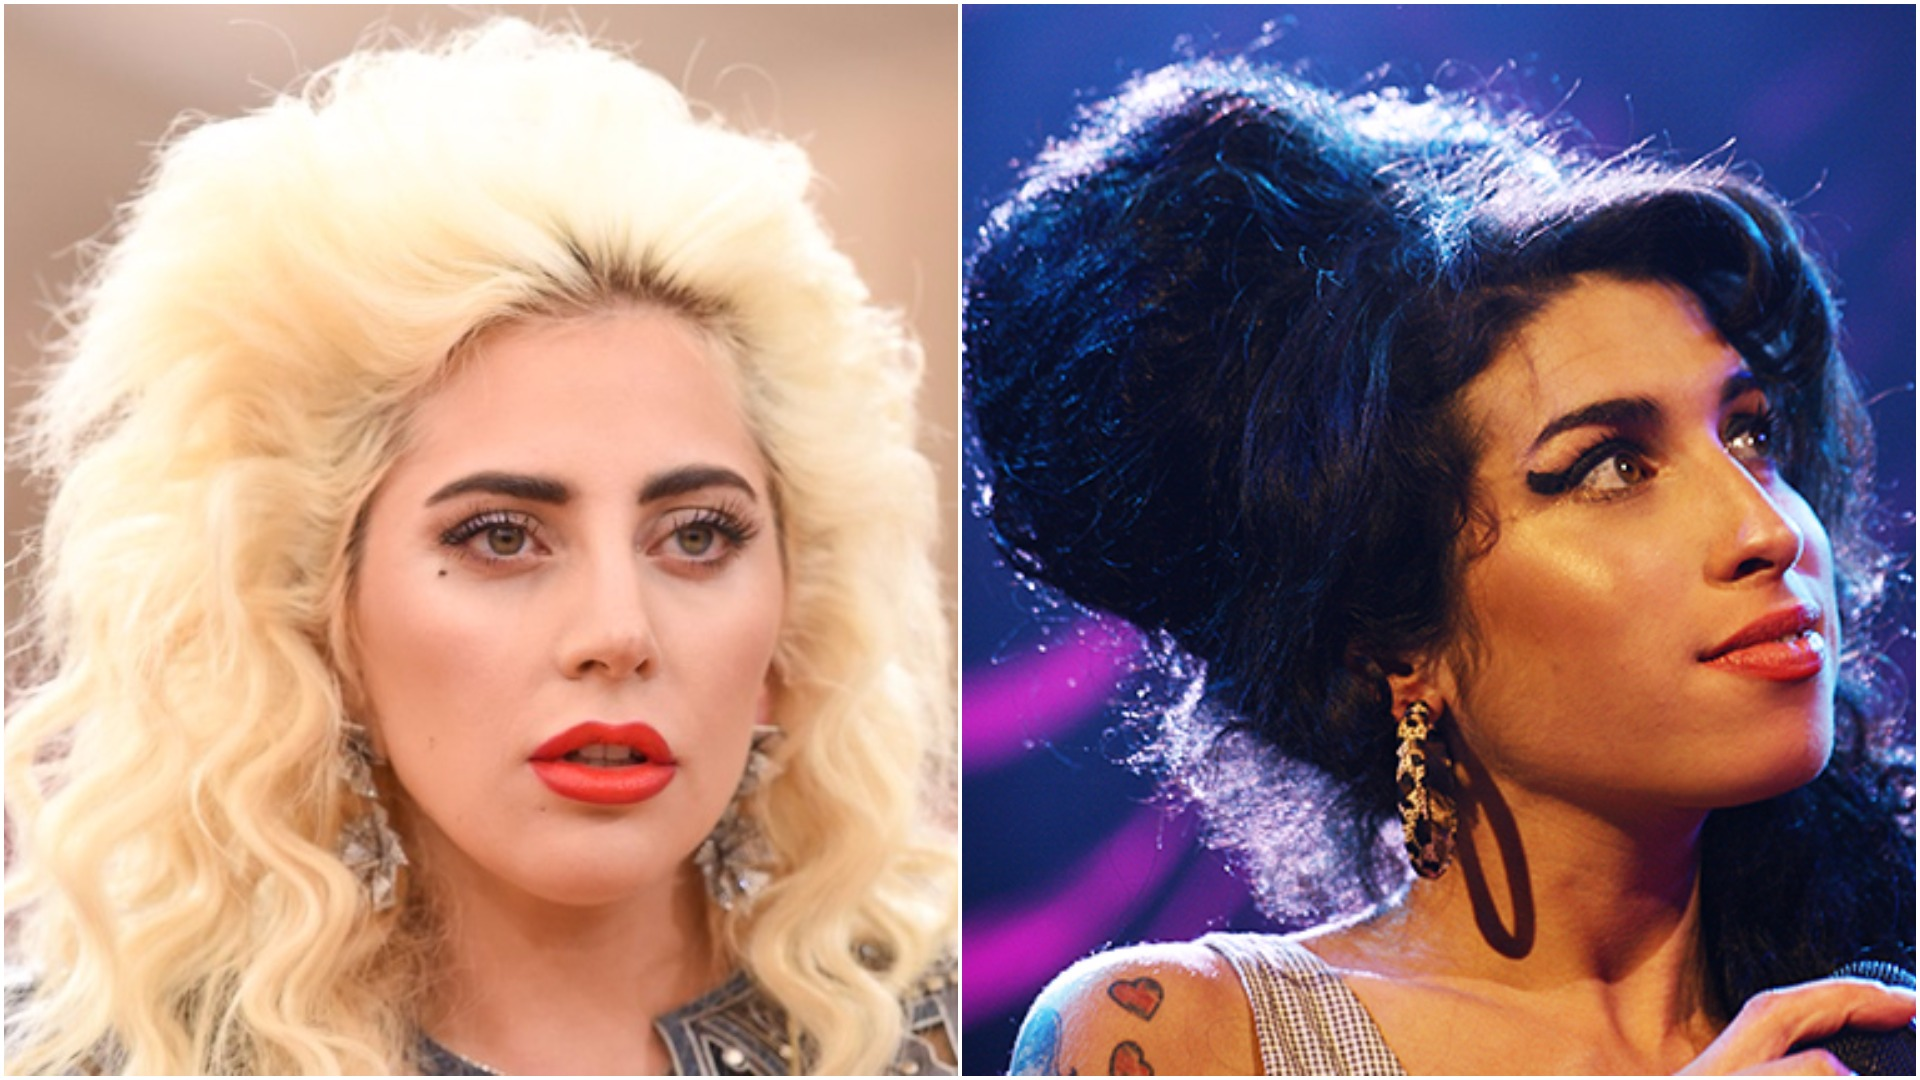 Lady Gaga will apparently cover an Amy Winehouse classic in aid of the star's foundation